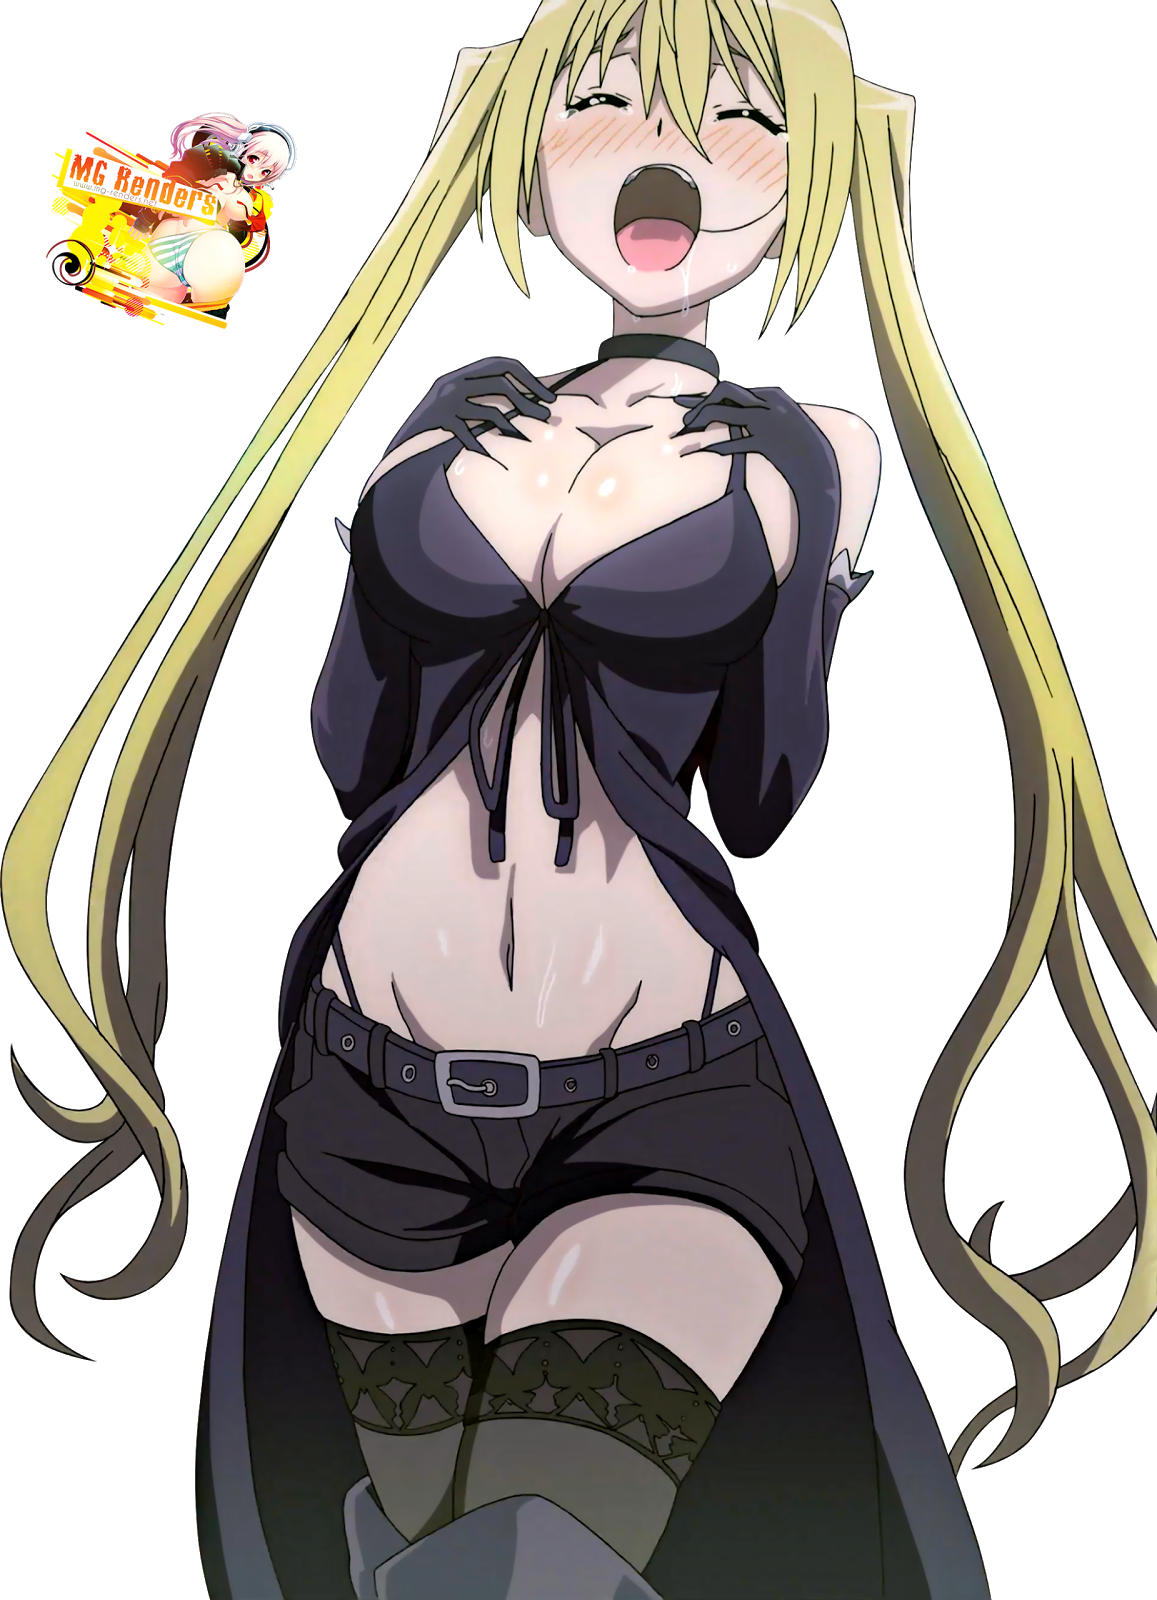 Tags: Anime, Render,  Lieselotte Sherlock,  Trinity Seven,  PNG, Image, Picture